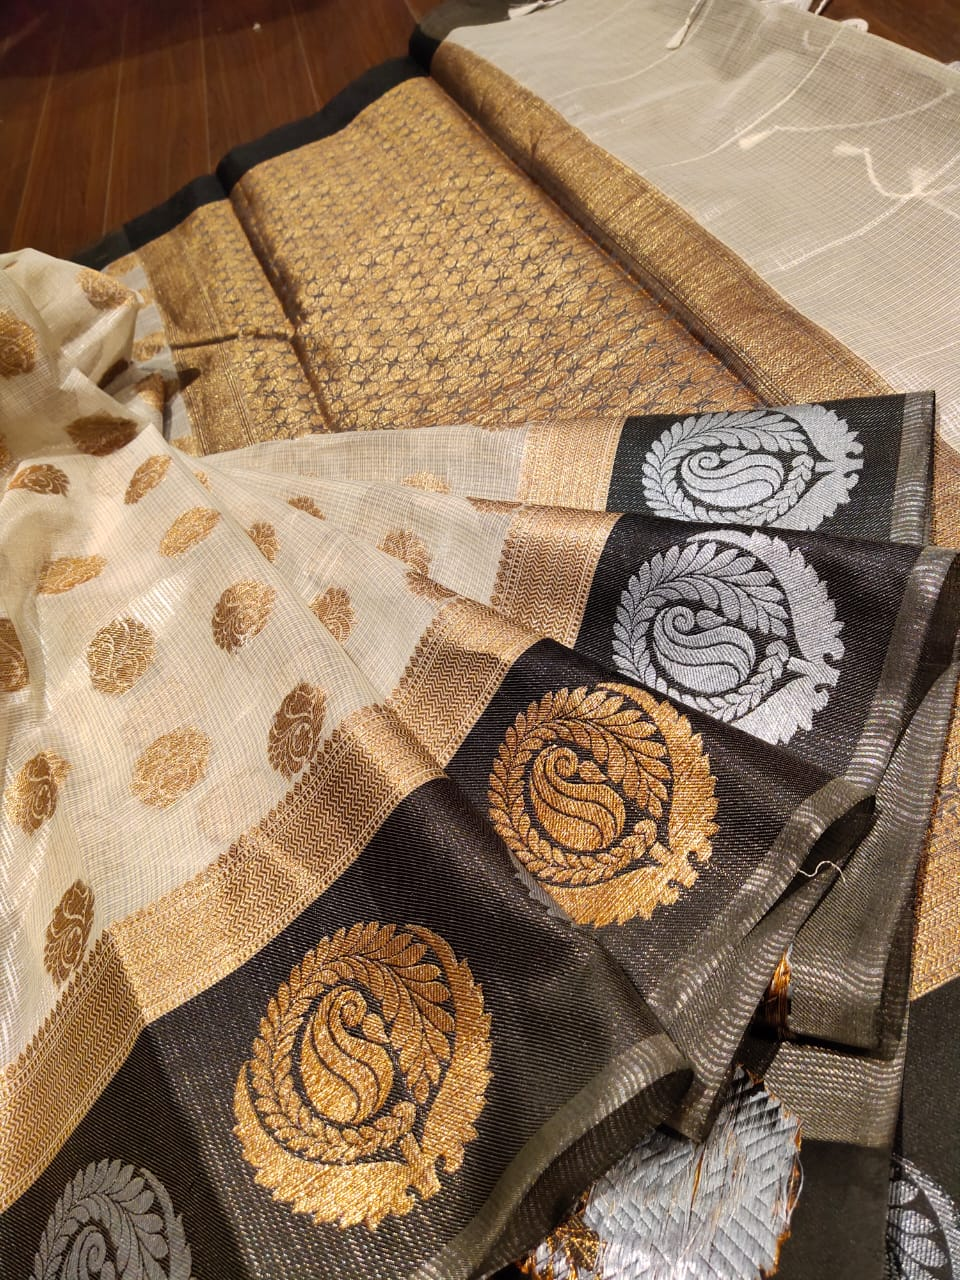 Off white kota saree with golden and silver motifs on black border and golden booties all over